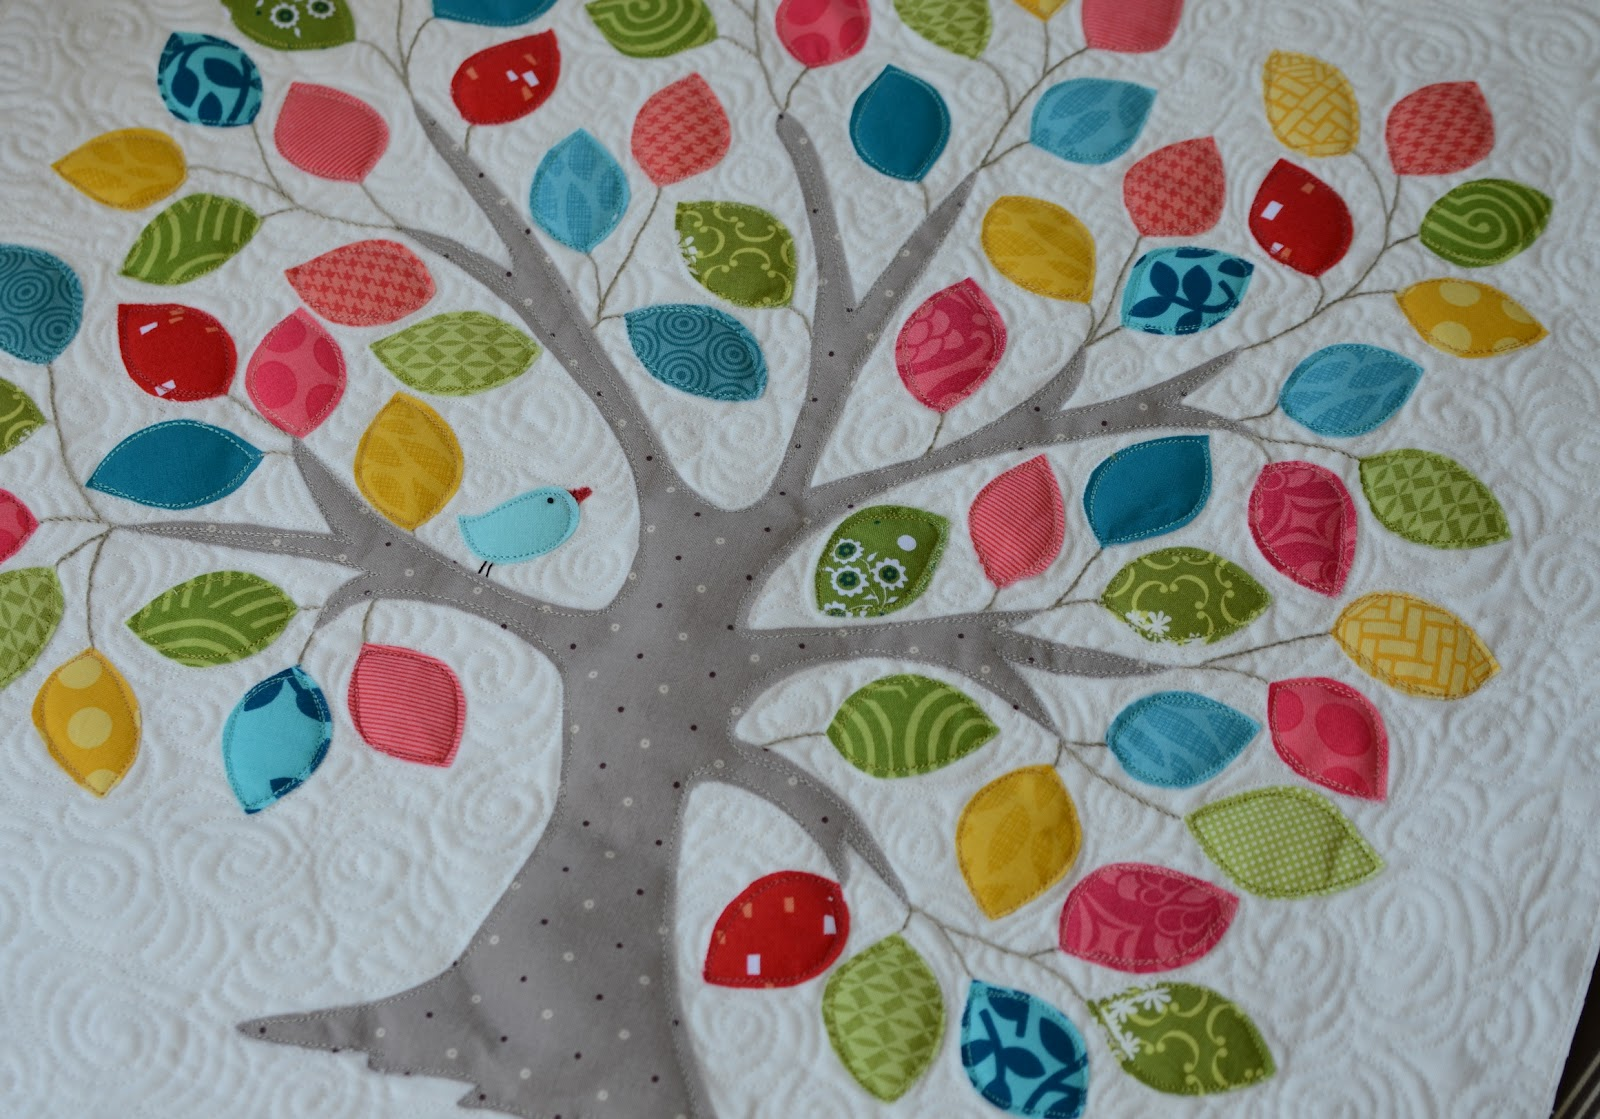 Applique Hyacinth Quilt Designs Tree Appliqué